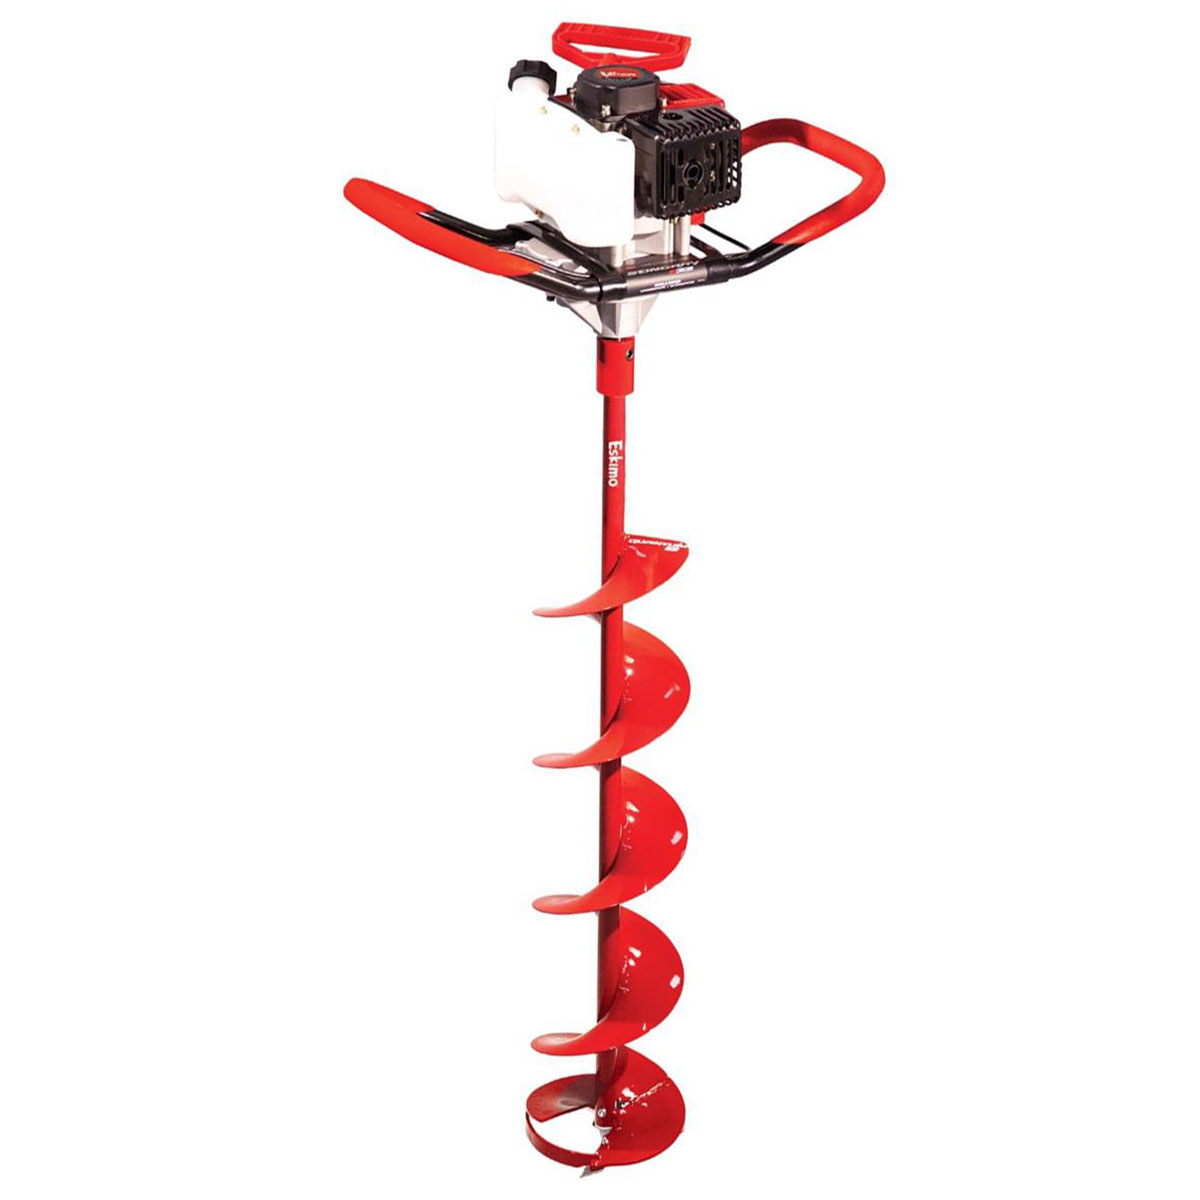 Eskimo Stingray Series Power Auger